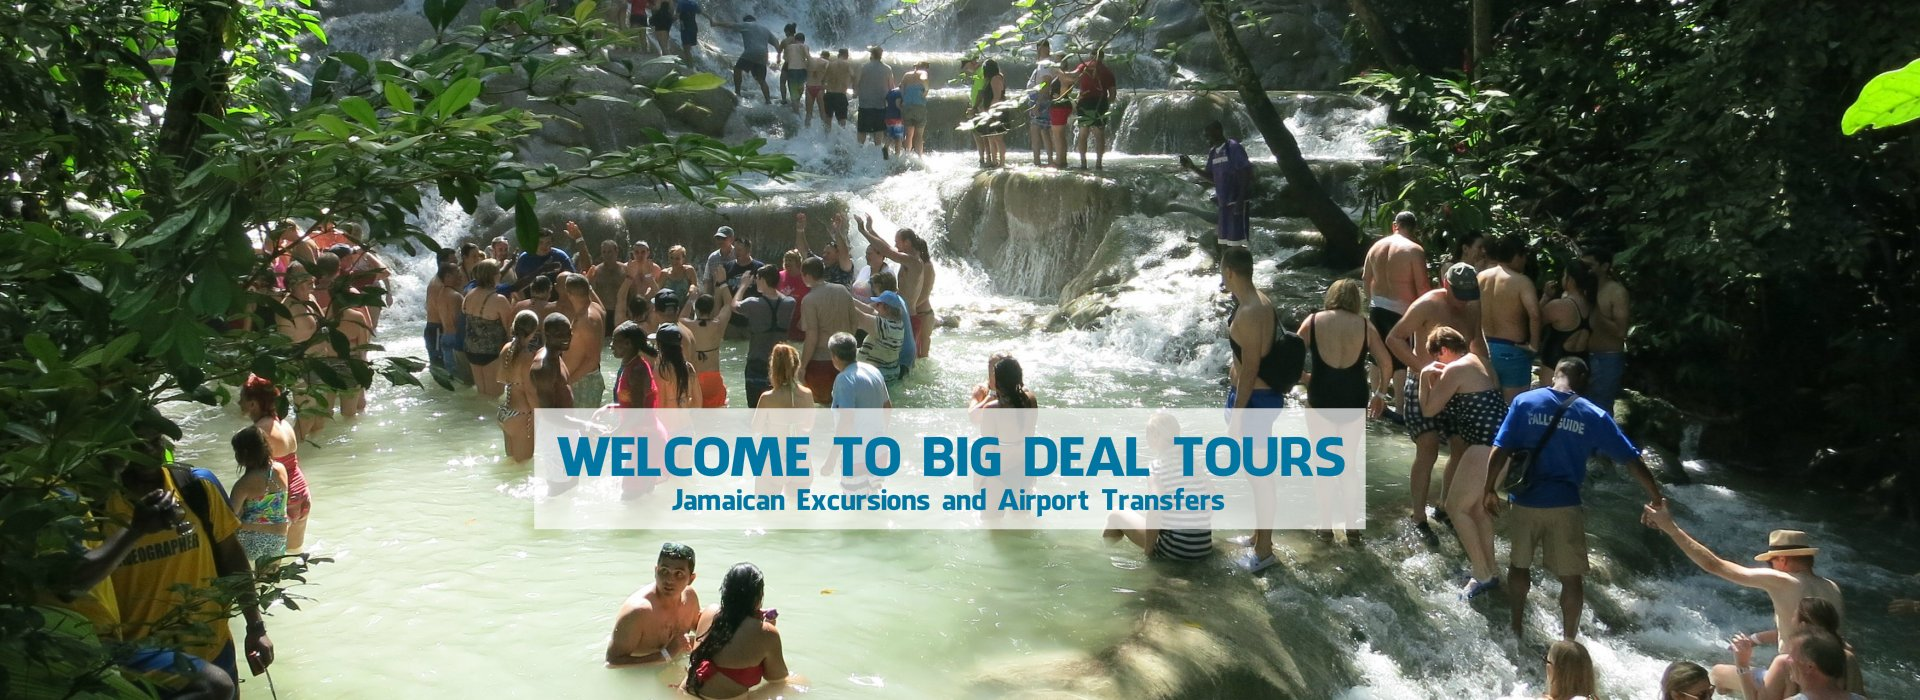 Big Deal Tours Dunns River